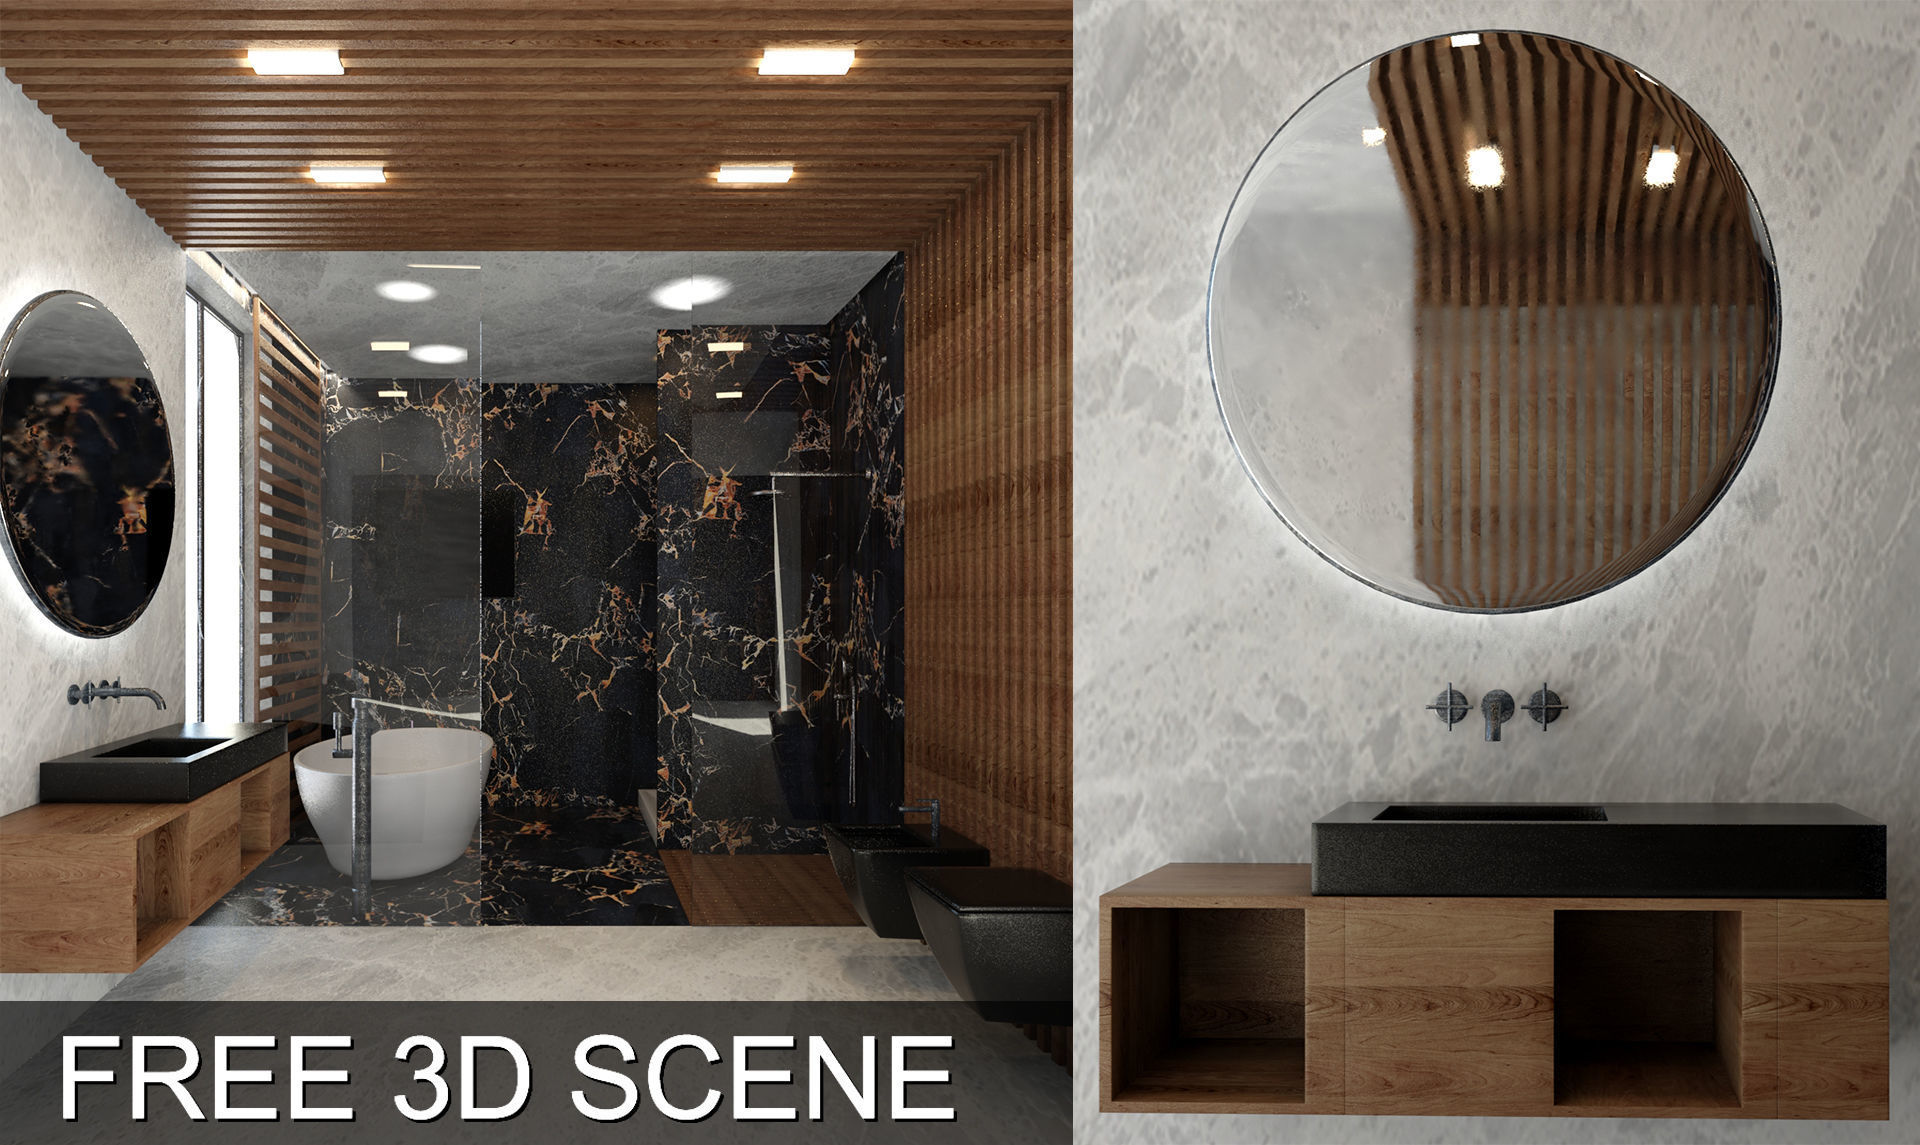 Bathroom Scene 3D Models Free - Video Timelapse in the Previews